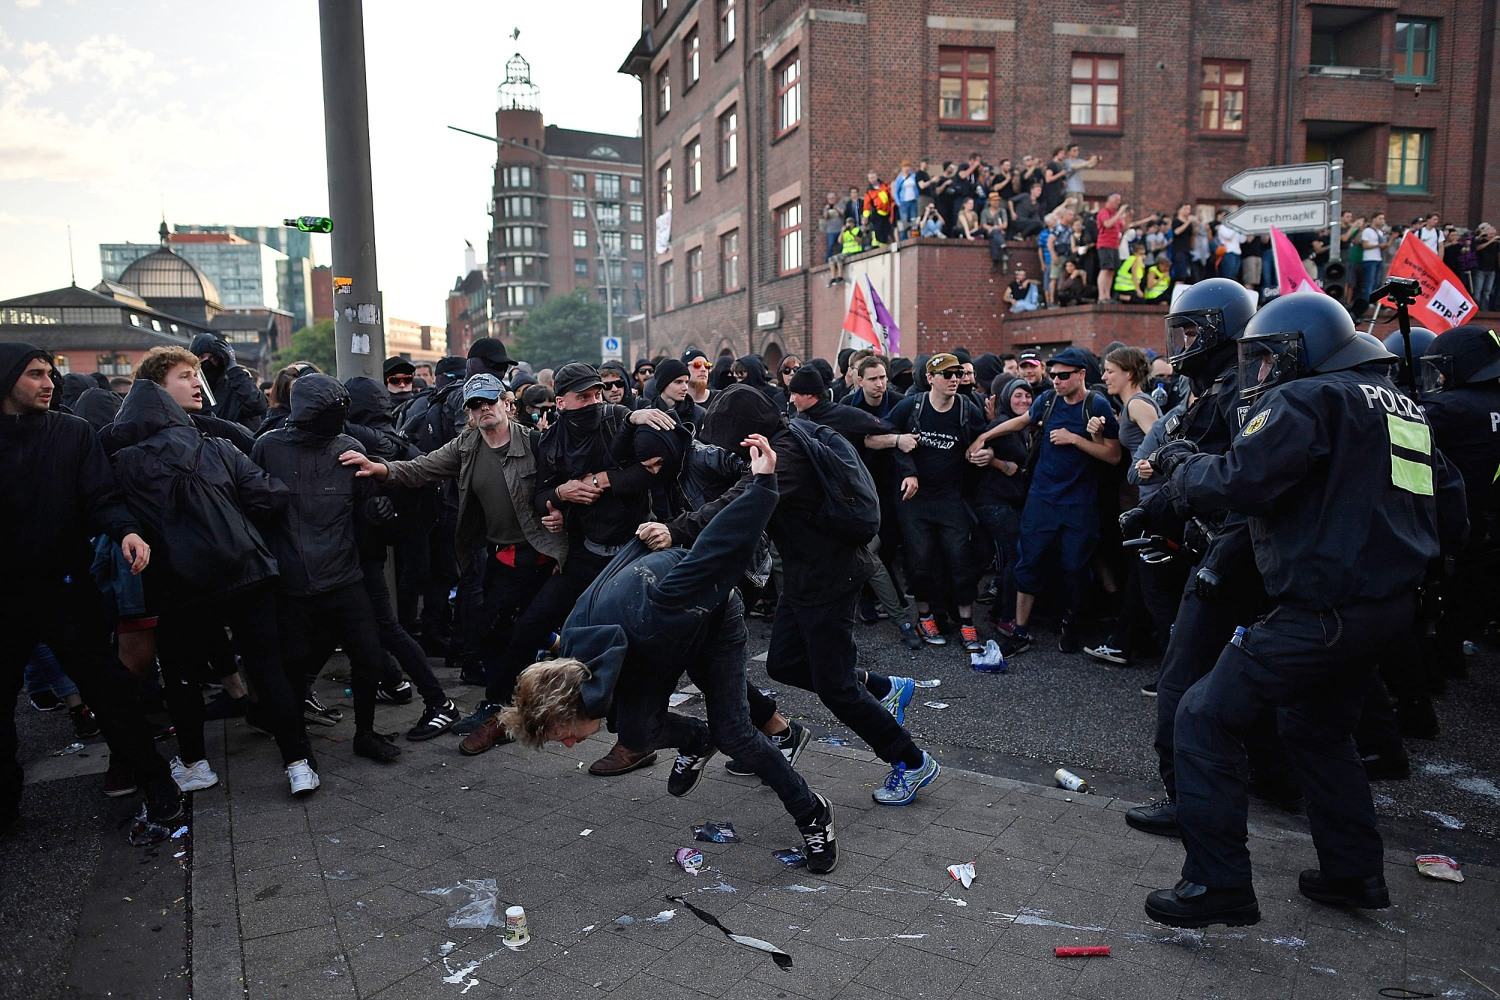 https://media3.s-nbcnews.com/j/newscms/2017_27/2063336/ss-170706-g20-protest-hamburg-ew-355p_8_fbf0f959aef7ad3c110f13bb3308f54a.nbcnews-ux-2880-1000.jpg